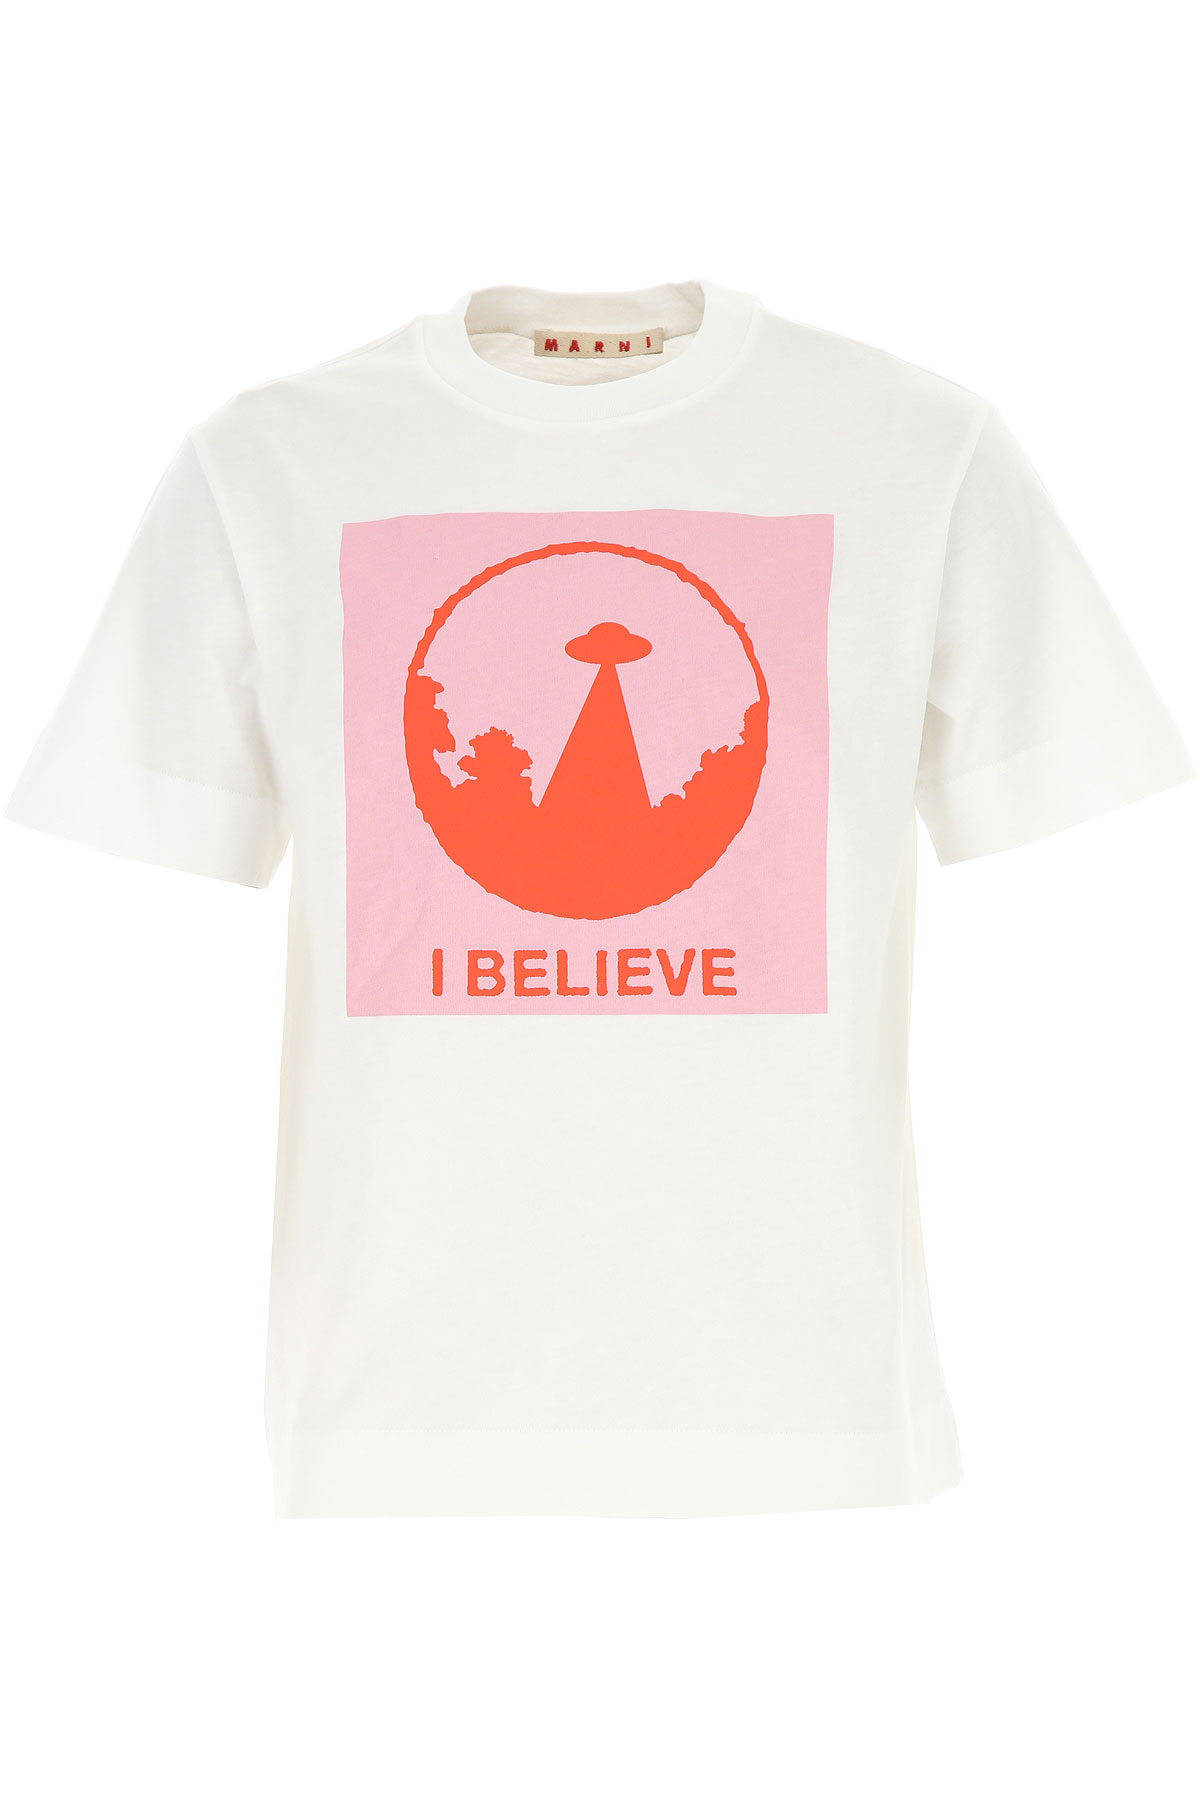 Marni Kids T-Shirt for Girls On Sale, White, Cotton, 2019, 10Y 6Y